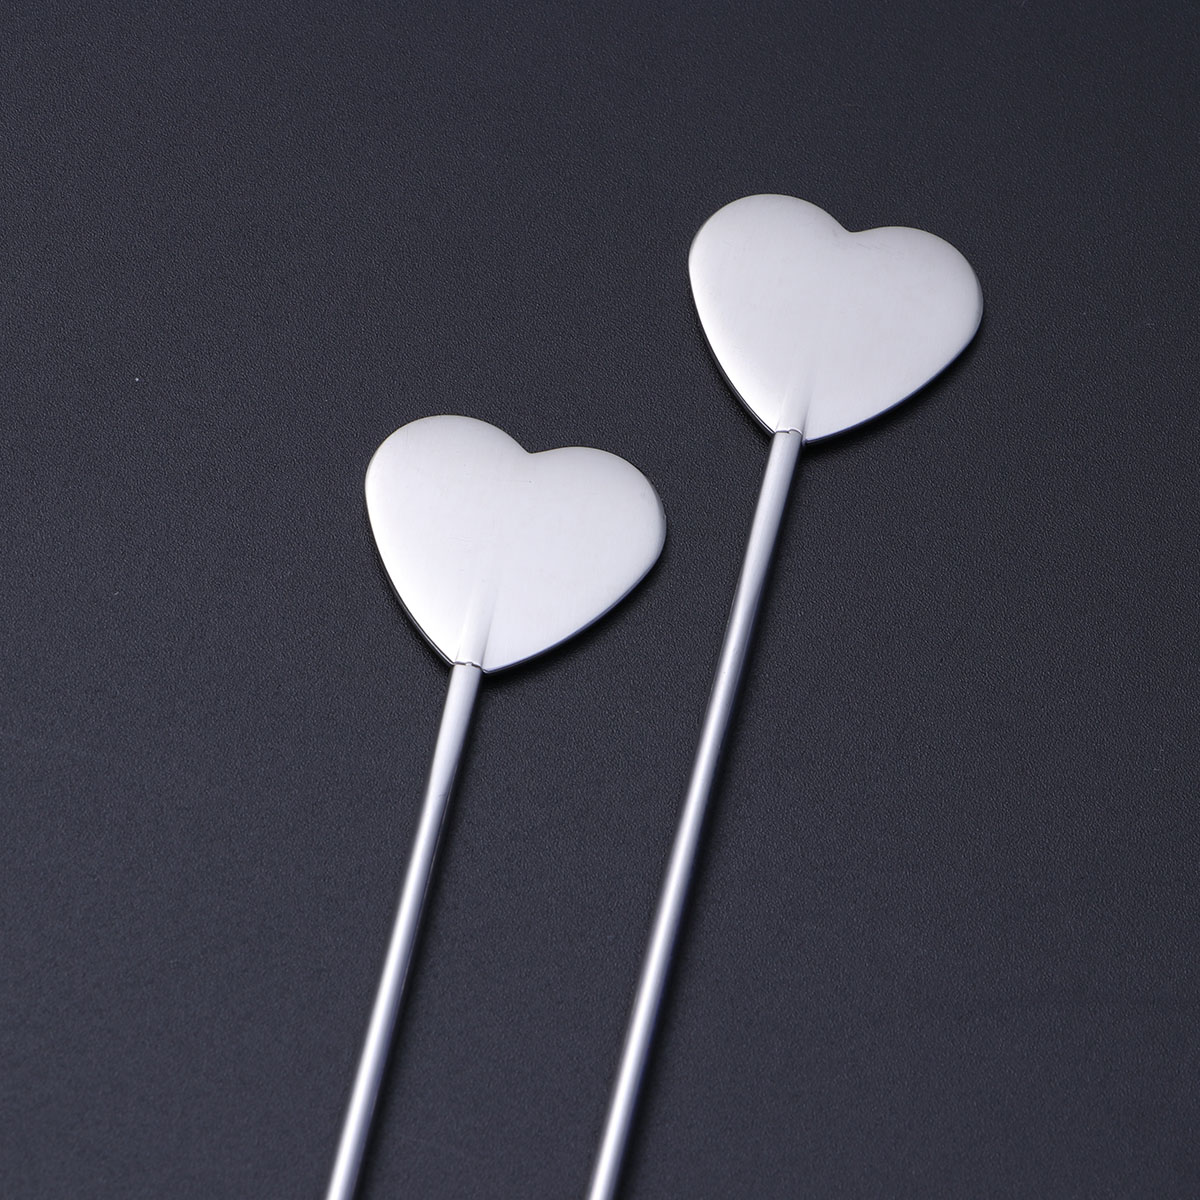 5 Pcs Stainless Steel Heart-shaped and Round Bead Cocktail Pick Set Fruit Stick